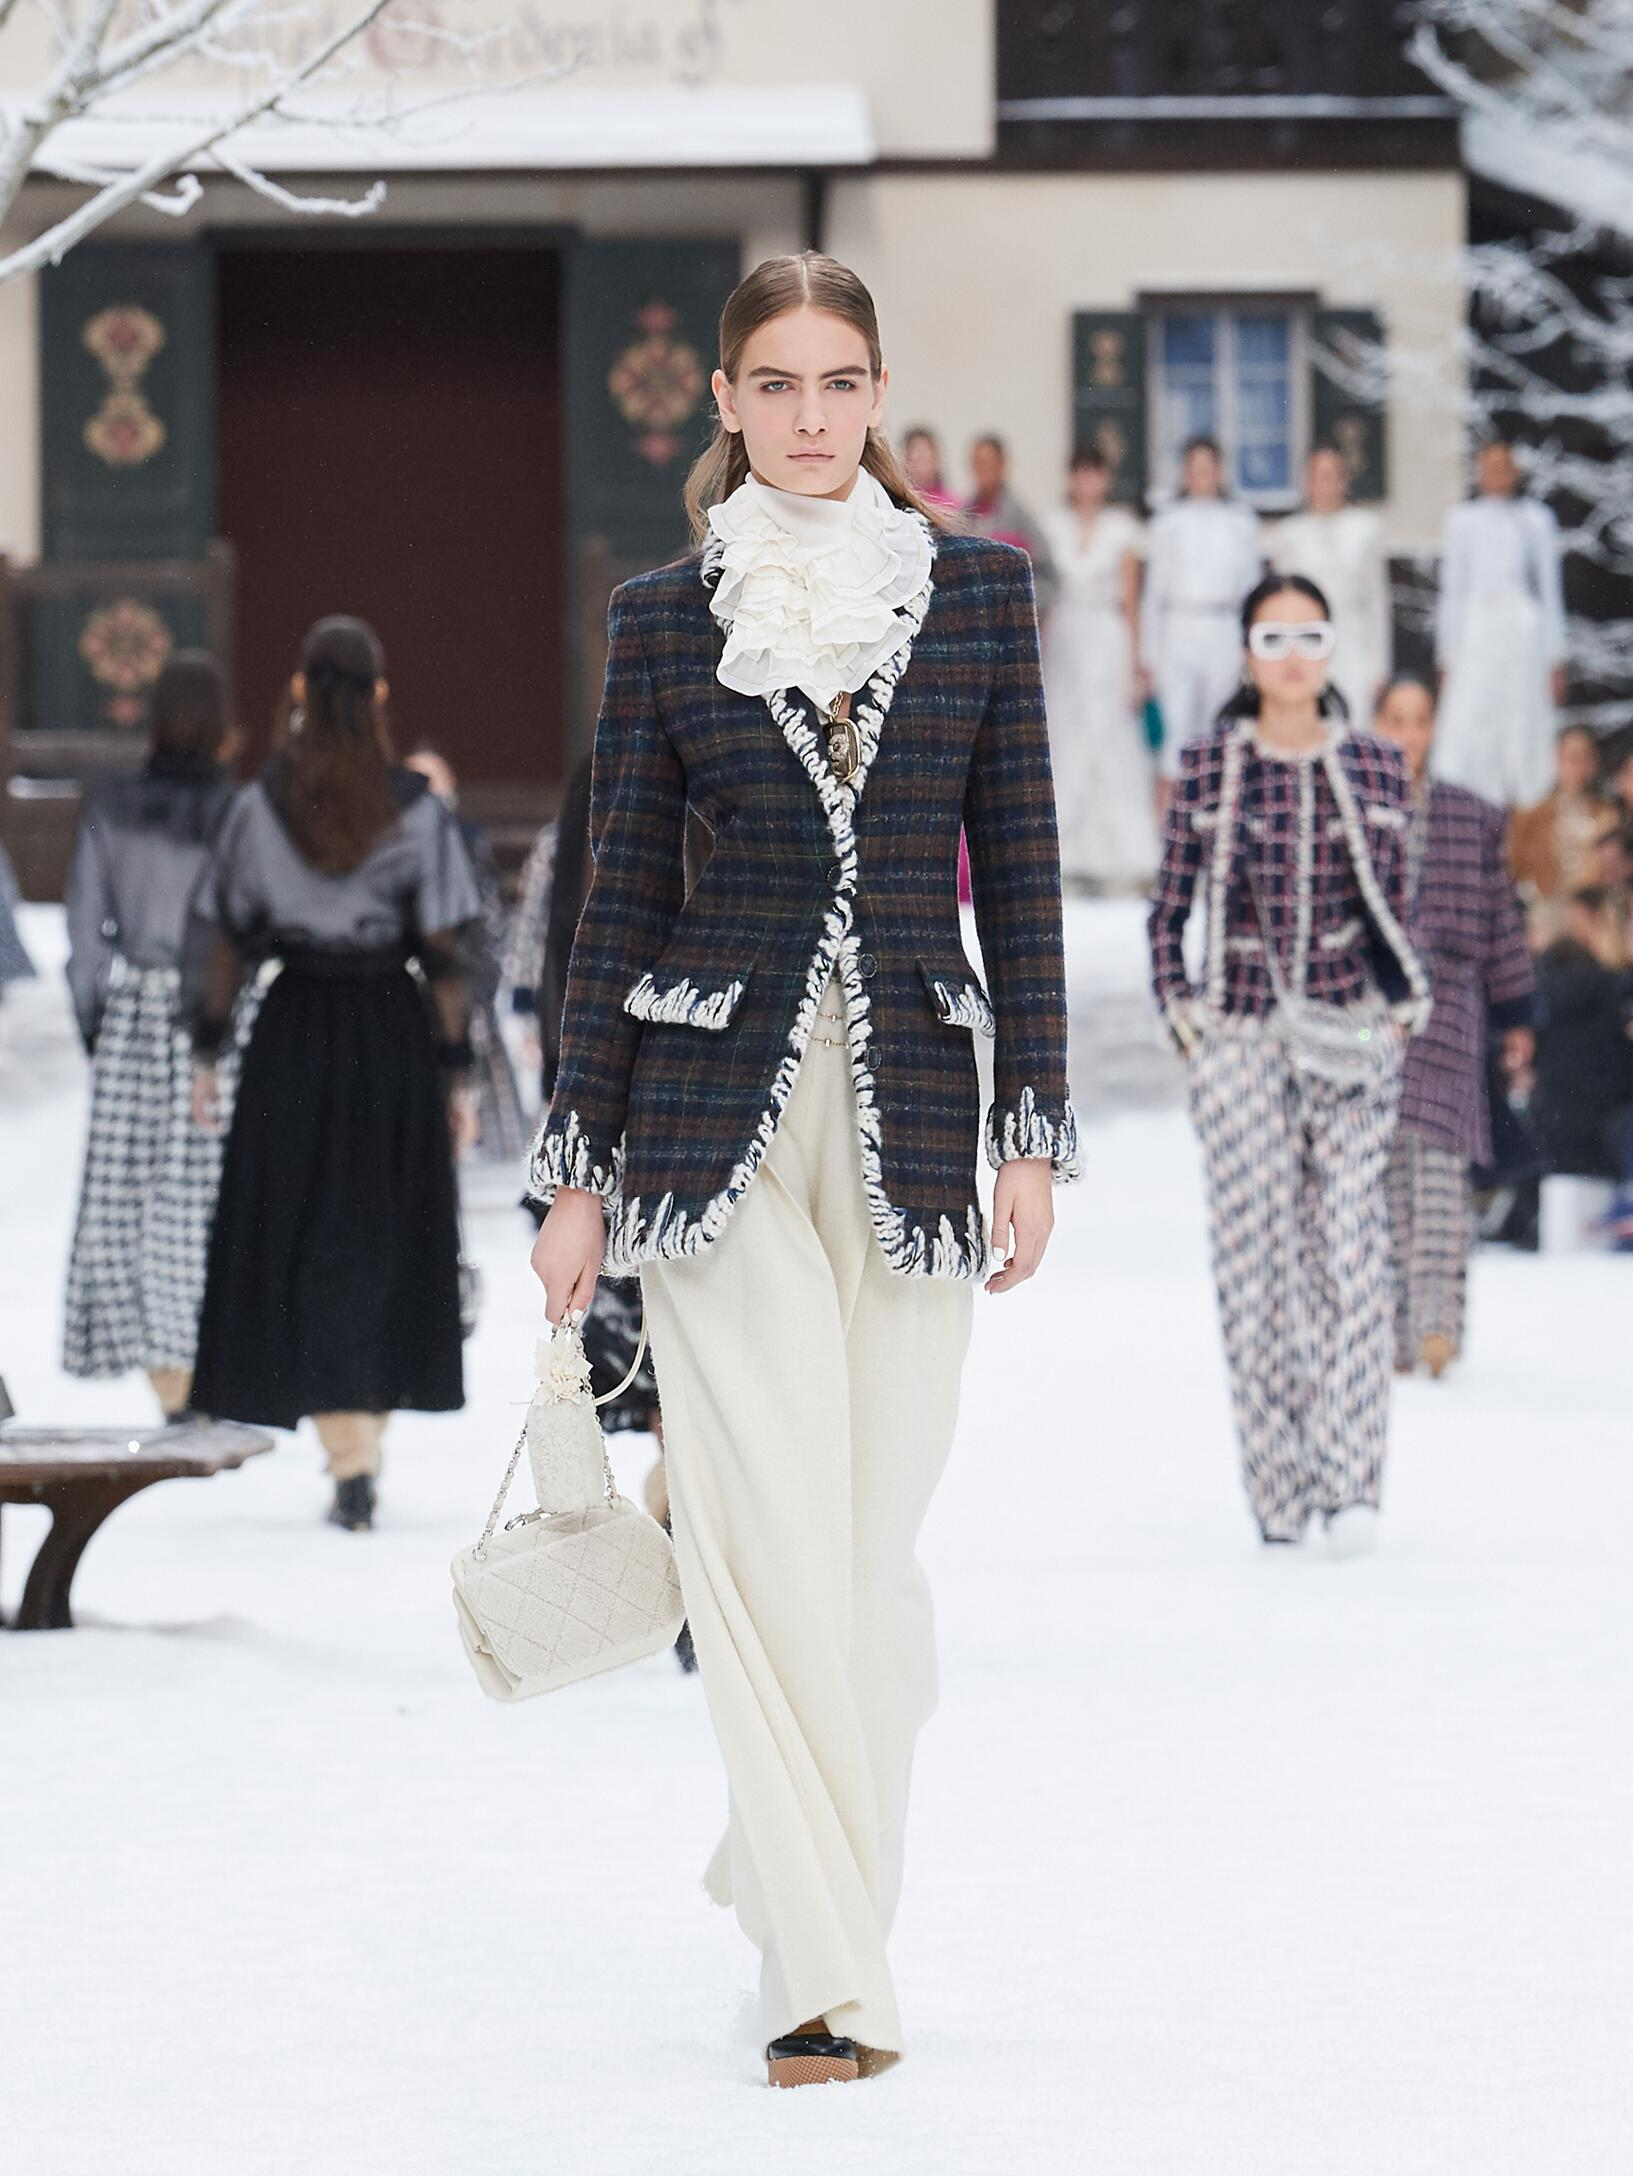 Chanel Winter 2019 Catwalk